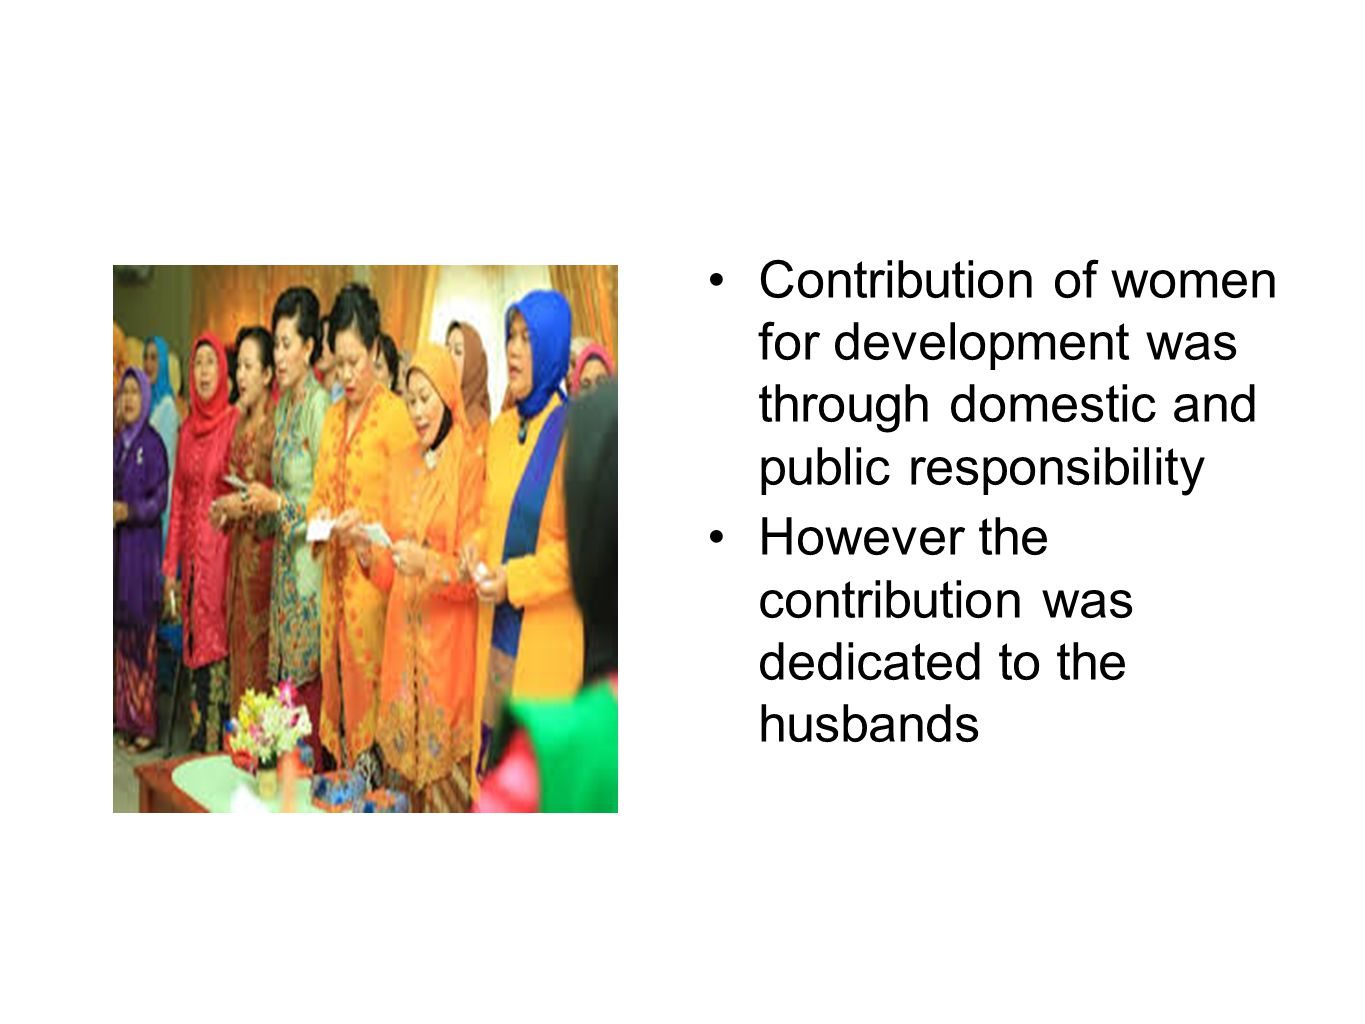 Contribution of women for development was through domestic and public responsibility However the contribution was dedicated to the husbands